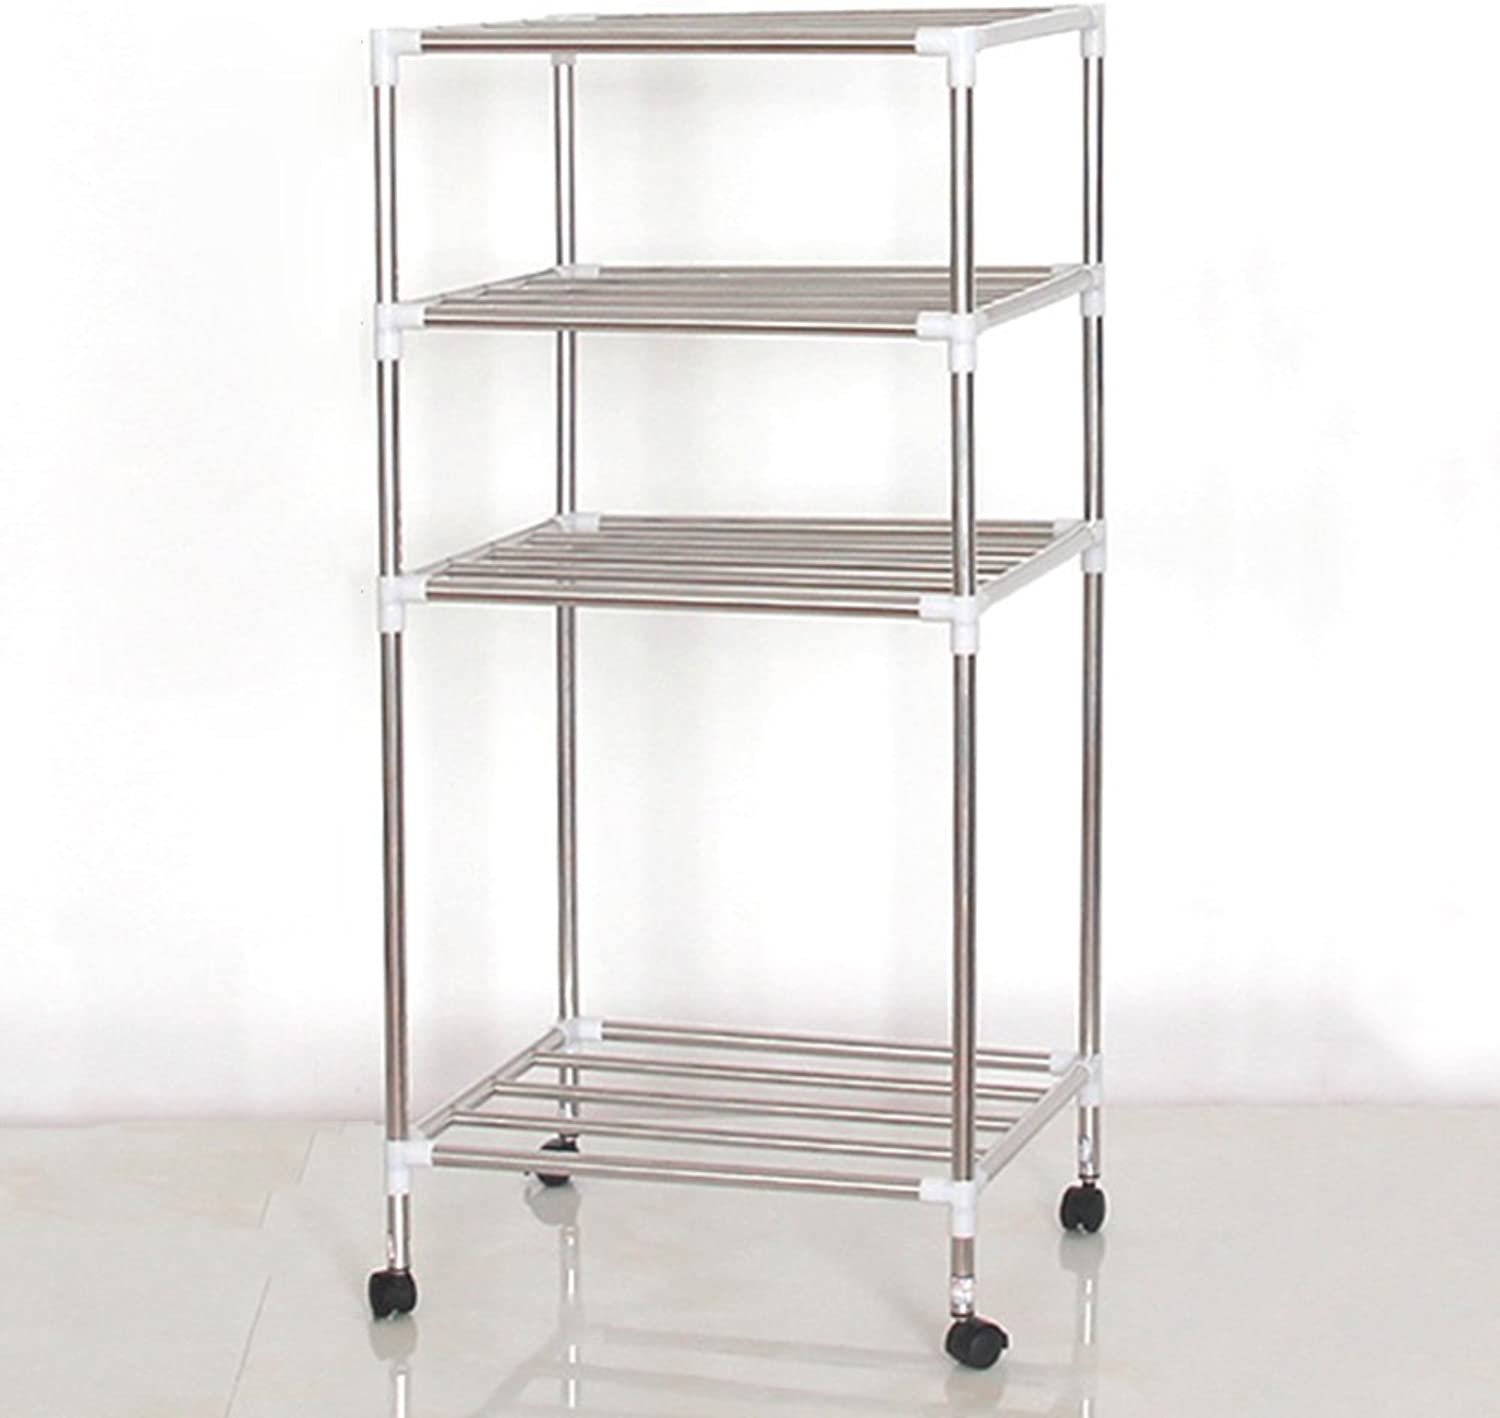 ZZHF yushizhiwujia Storage Racks Multi-Layer Stainless Steel Storage Shelf Floor-Standing Washbasin Holder Kitchen Bathroom Storage Shelf (Size   89  43  35CM)